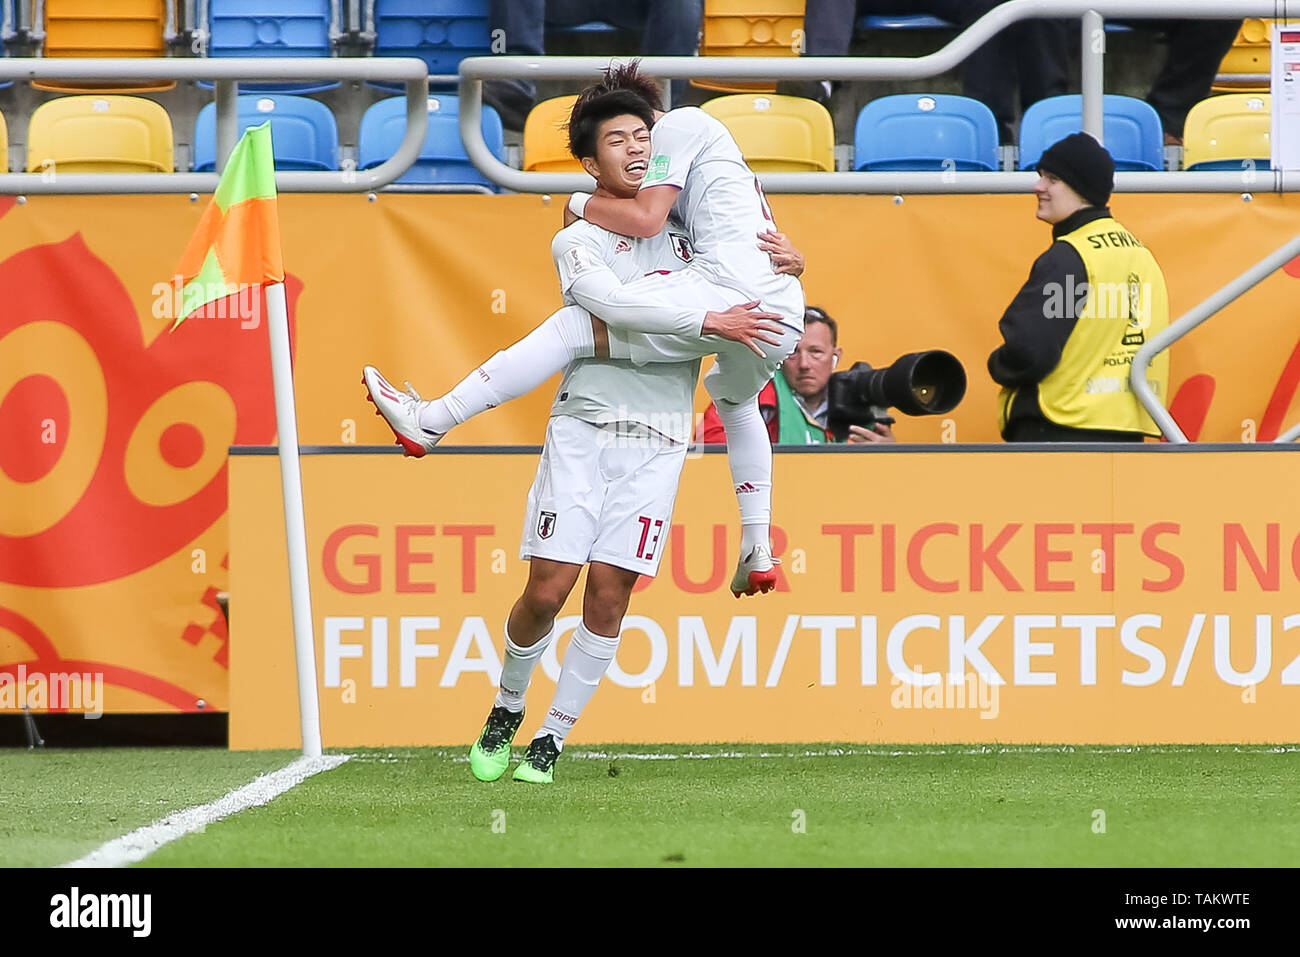 Gdynia Stadium, Gdynia, Poland - 26th May, 2019: Taisei Miyashiro(L) and Kota Yamada (R) from Japan are seen celebrating scoring his teams first goal of the game during FIFA U-20 World Cup match between Mexico and Japan (GROUP B) in Gdynia. (Final score; Mexico 0:3 Japan) - Stock Image